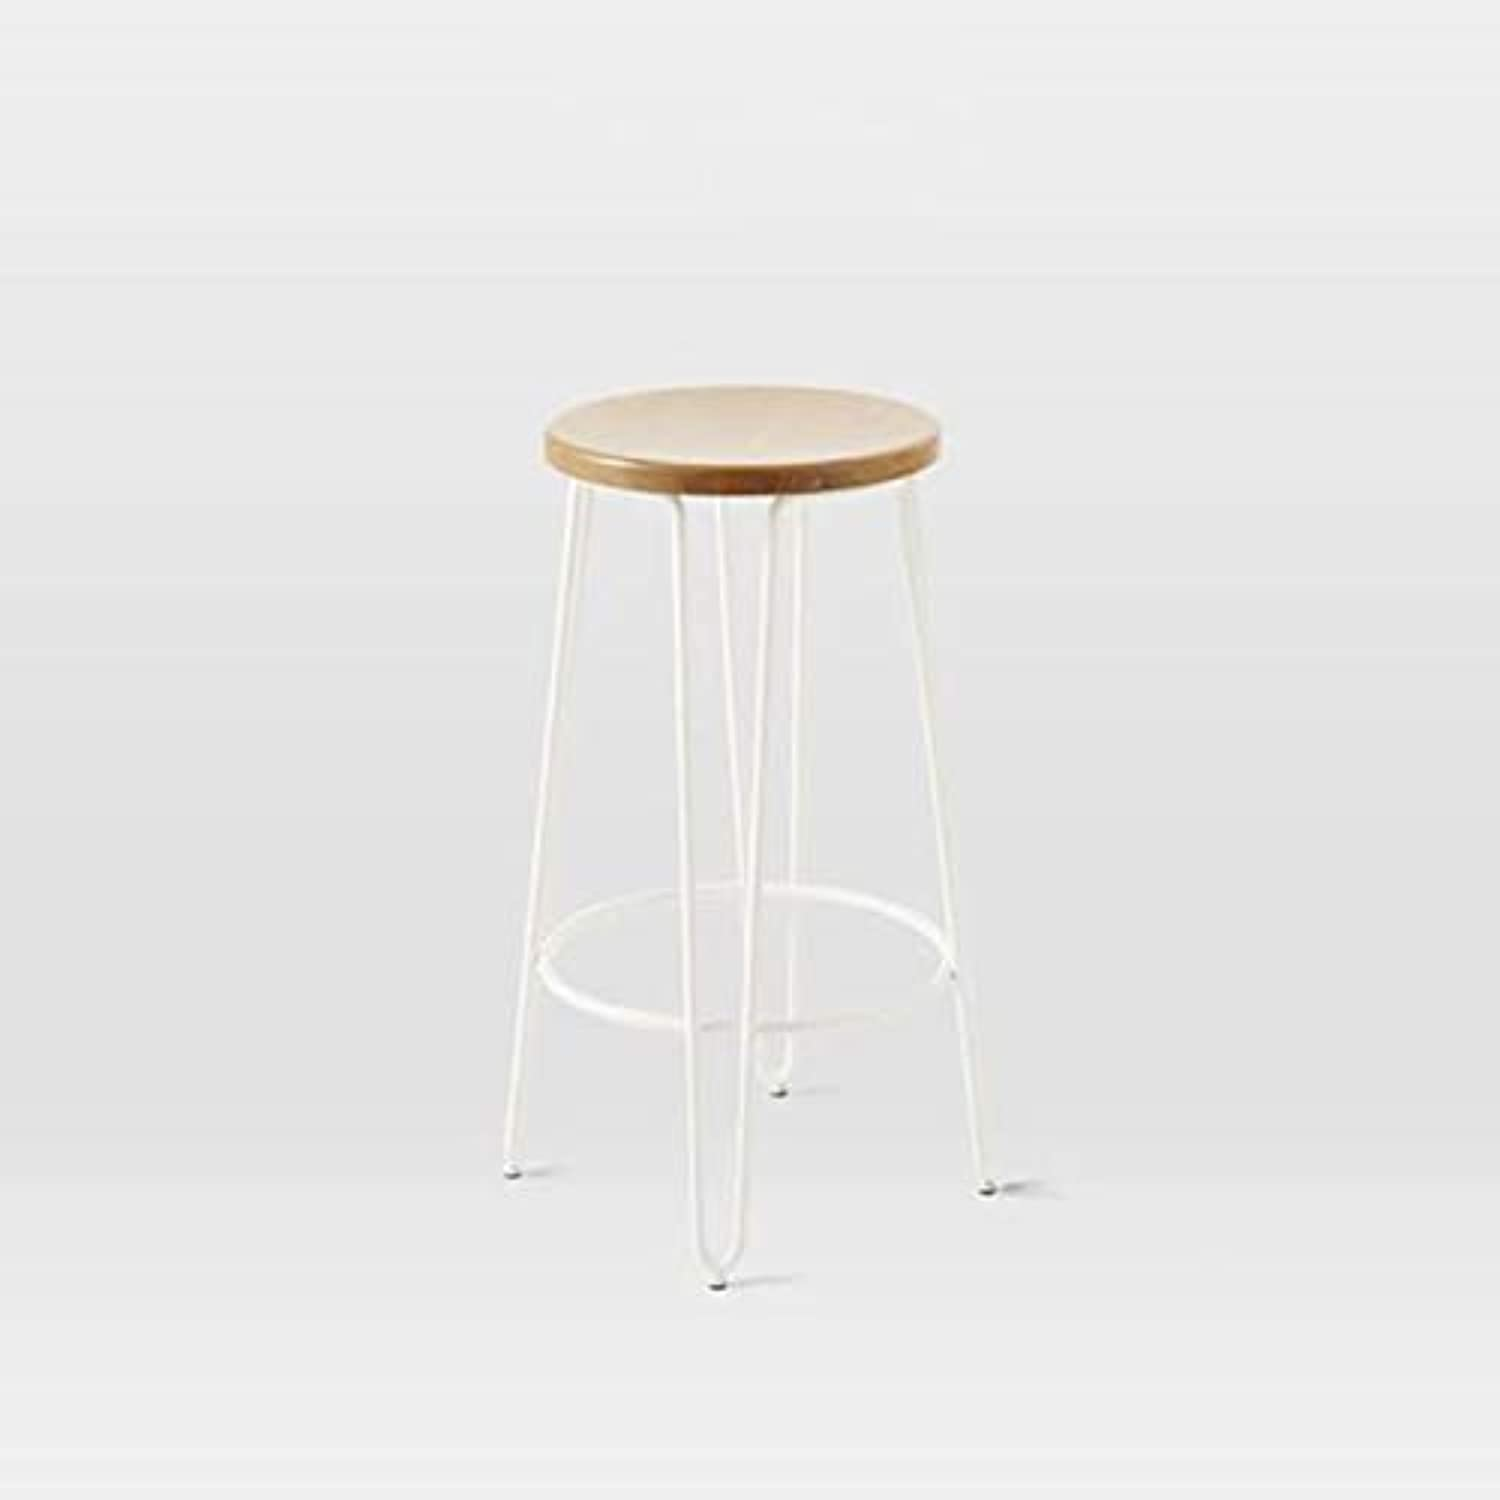 Barstools, American bar Cafe Solid Wood high Retro Casual Wrought Iron high Stool Tea Shop Dessert Shop Round bar Chair (color   White, Size   65CM)